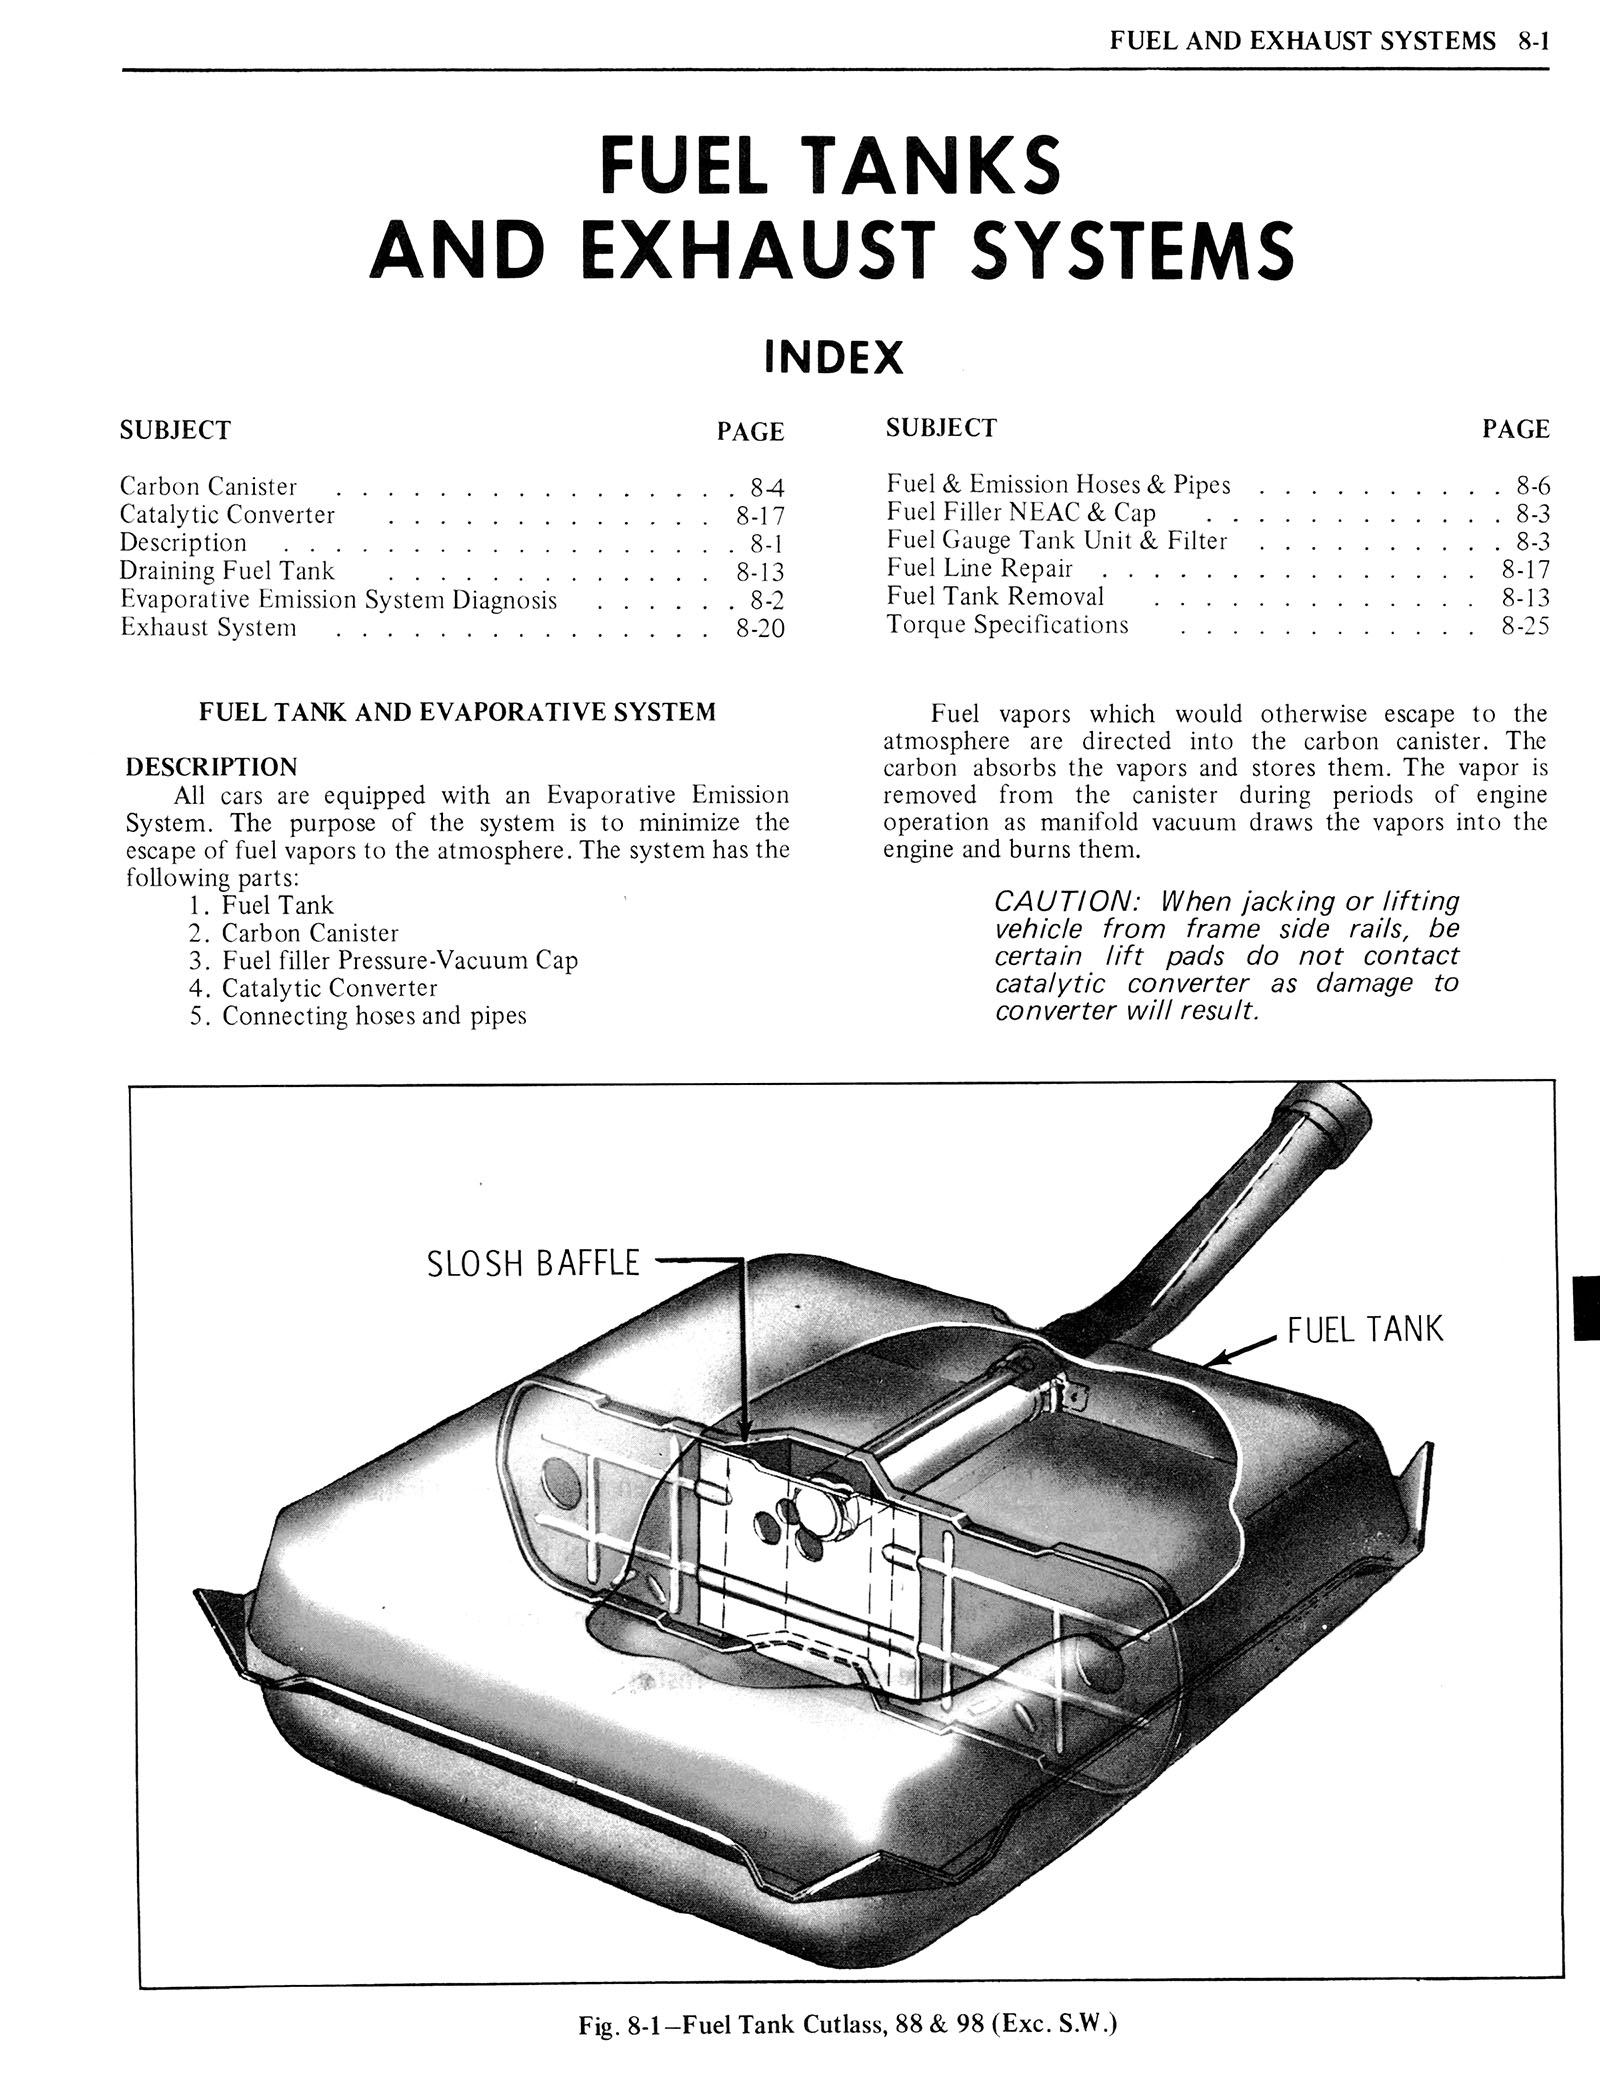 1976 Oldsmobile Service Manual page 929 of 1390